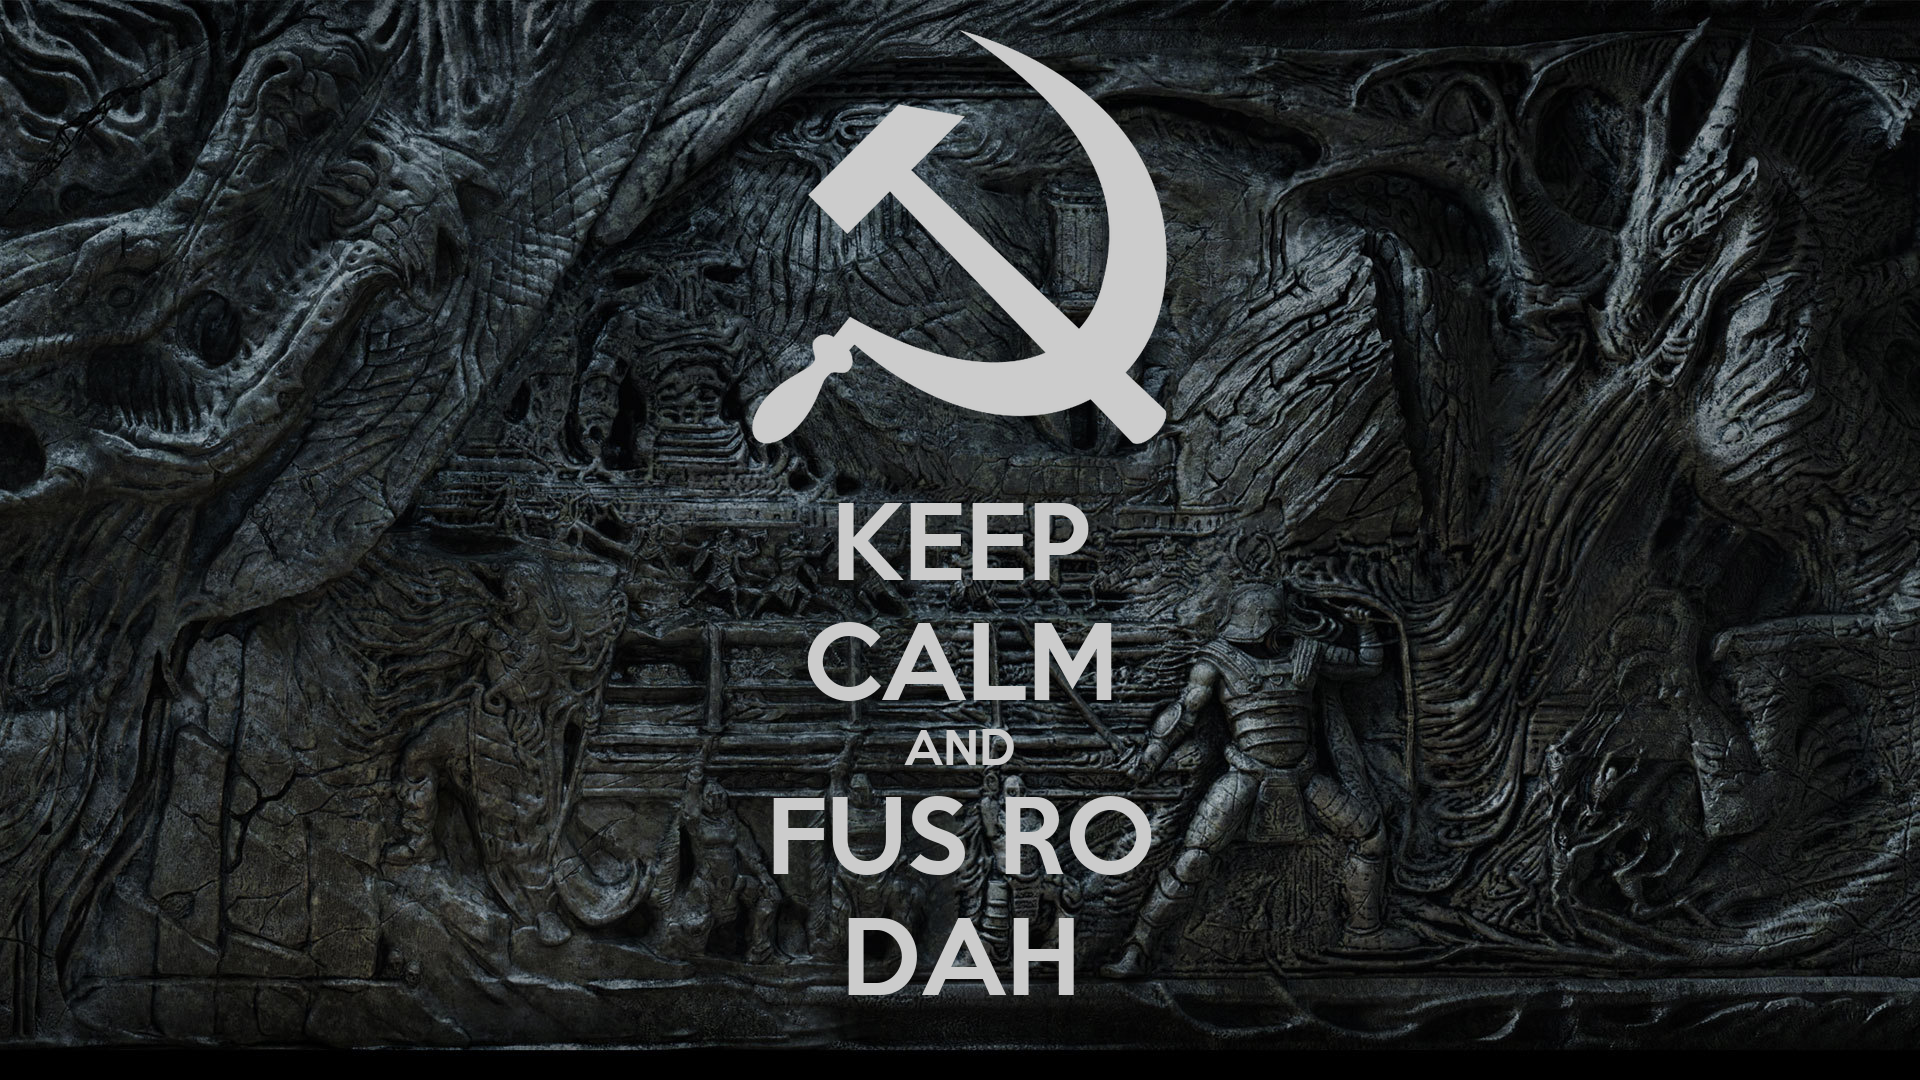 Keep Calm And Fus Ro Dah Poster